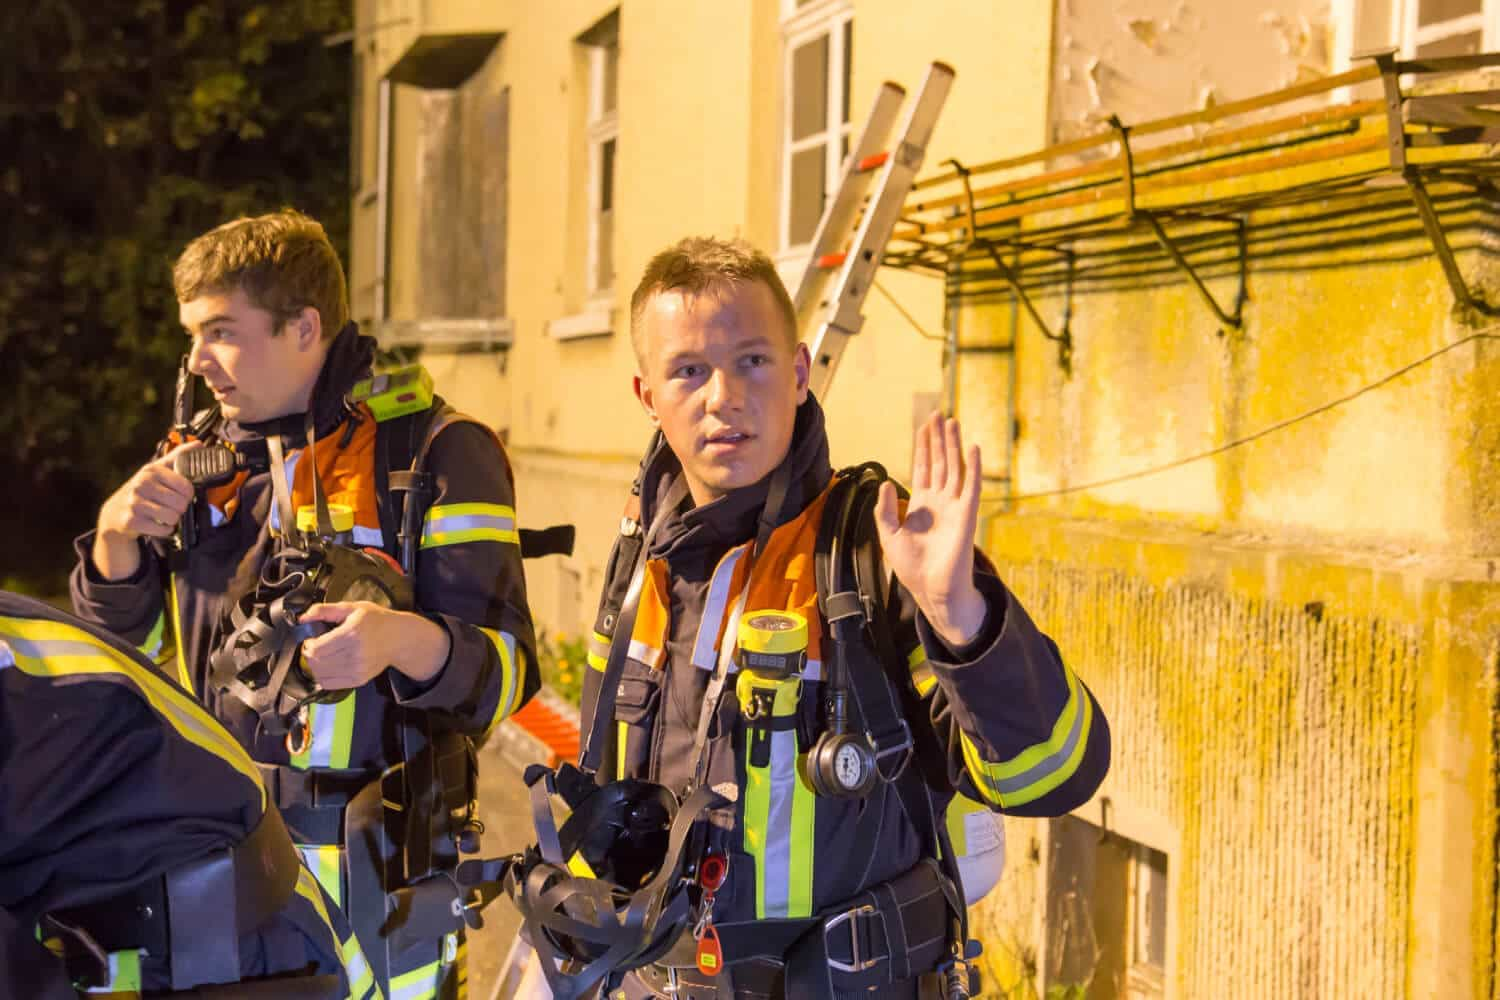 A team of 2 firefighter of a German fire brigade after an exhausting training session with protective gear